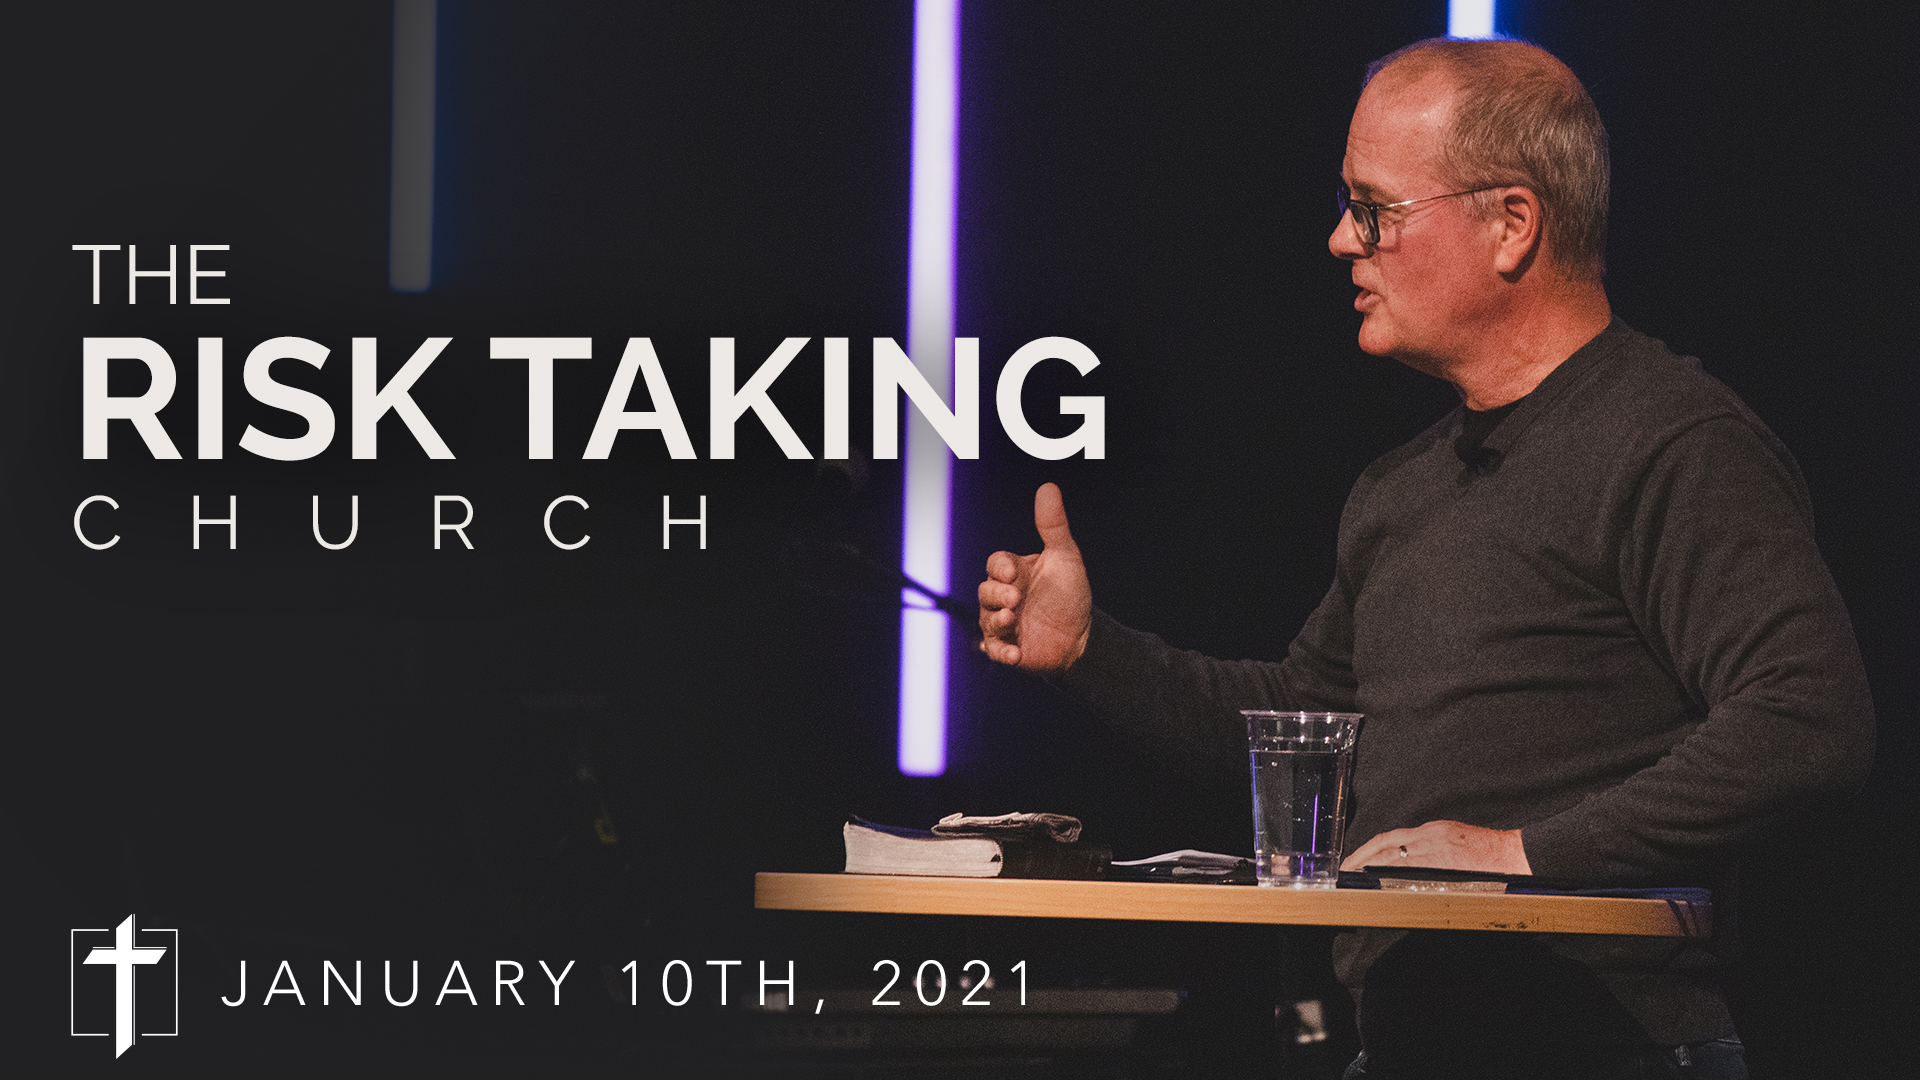 The Risk Taking Church